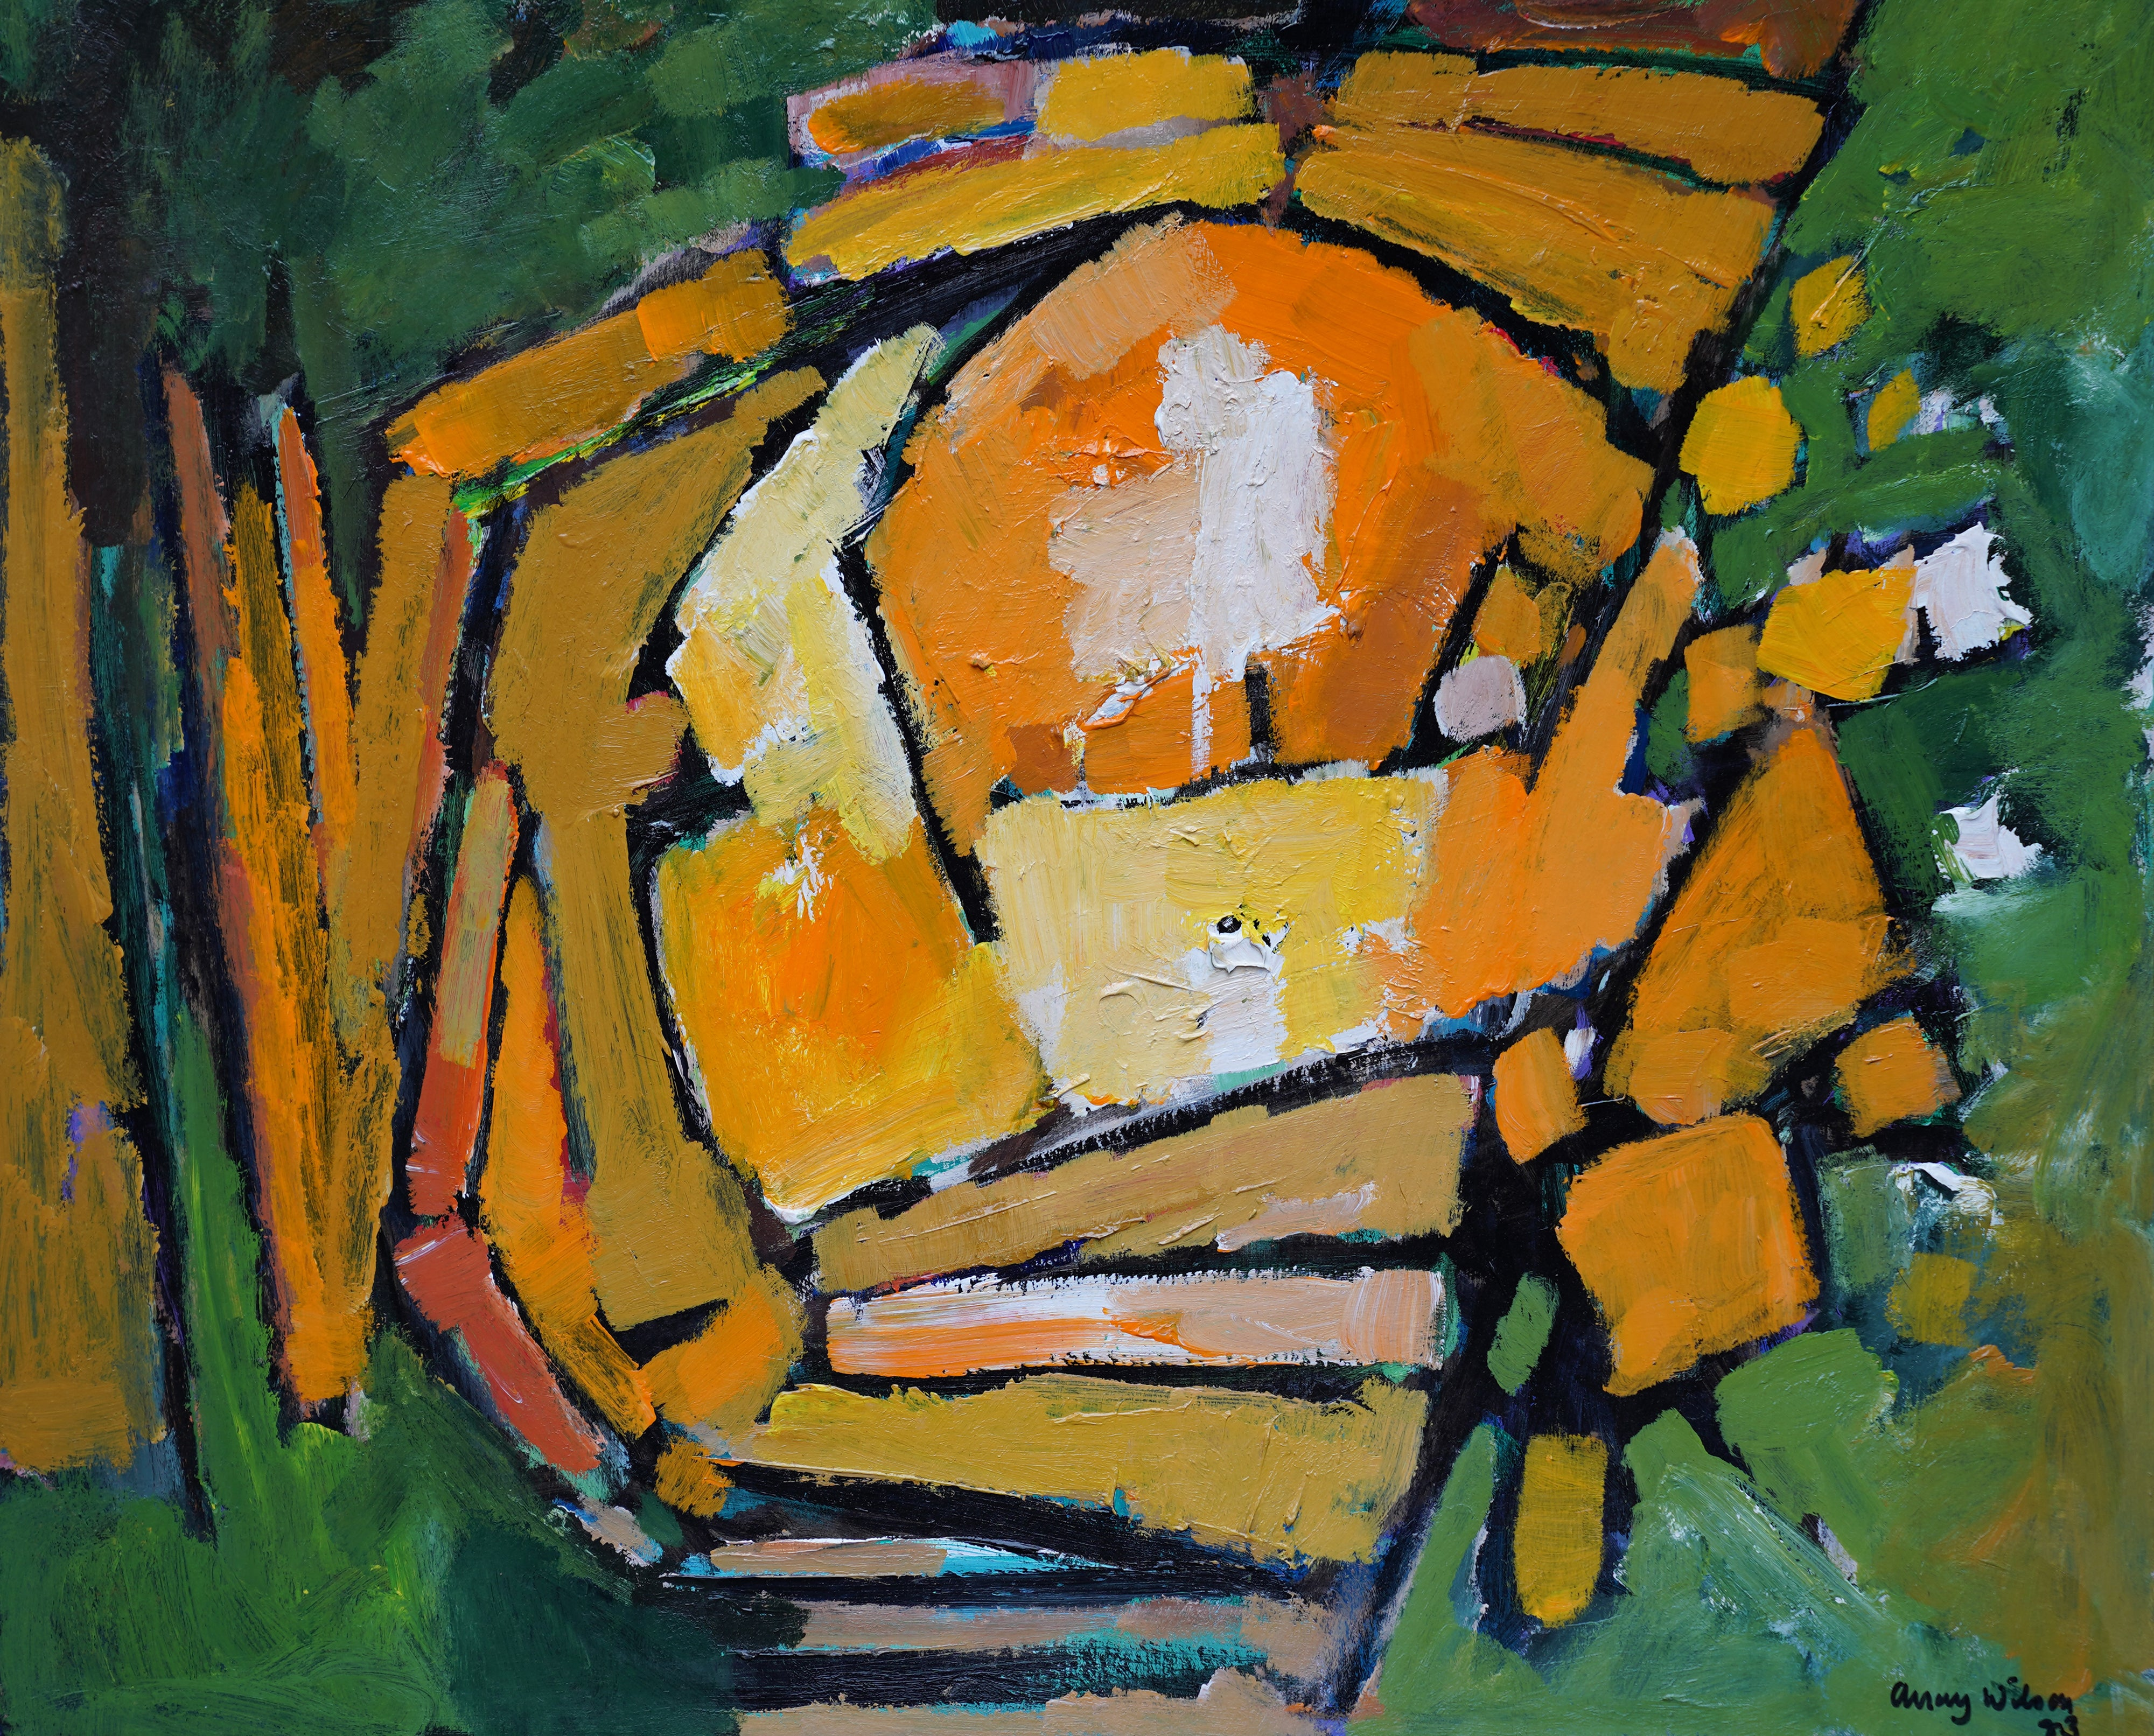 Abstract 1983 - Green Yellow - British 20th century Action art oil painting